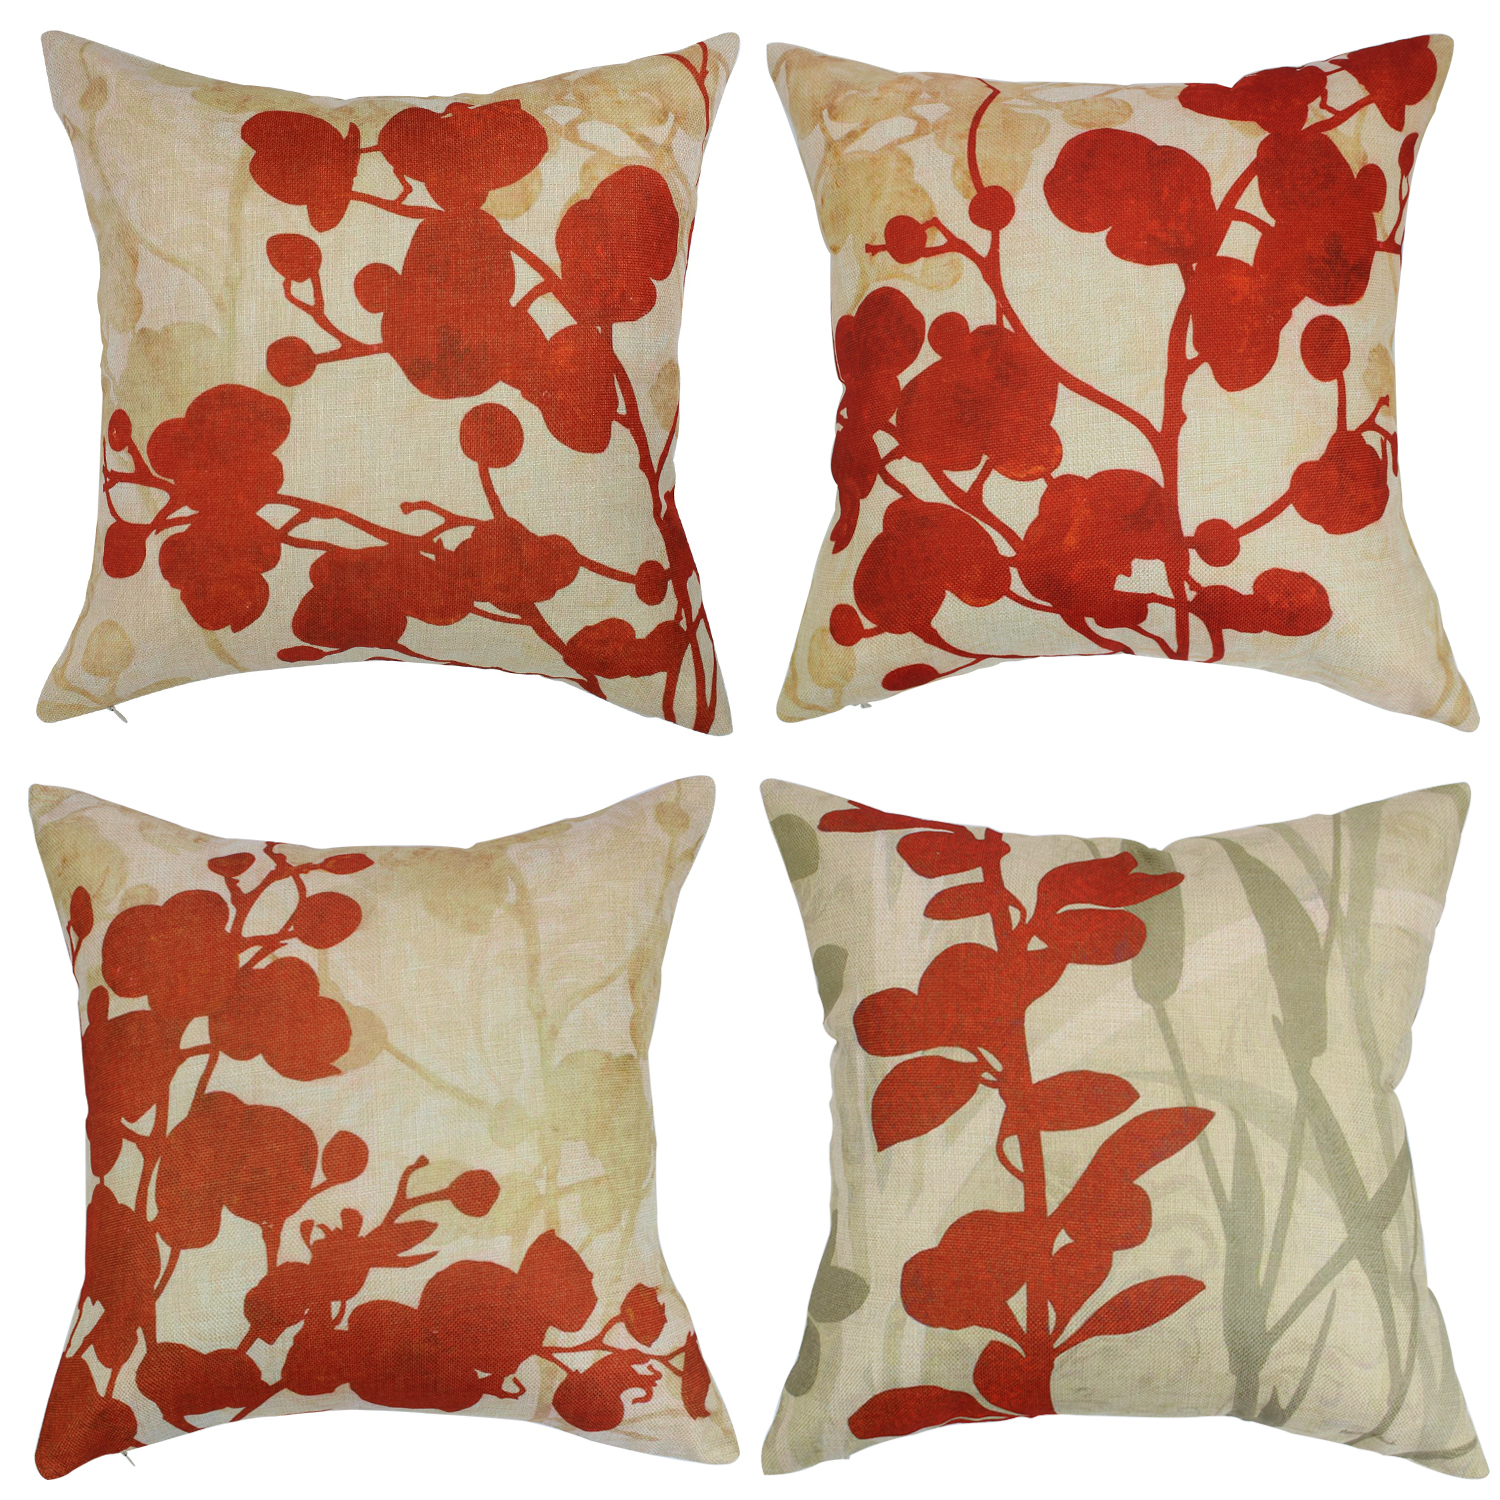 Wendana Red Floral Decorative Pillow Covers For Sofa,Set Of 4 Pieces  Flowers Couch Throws